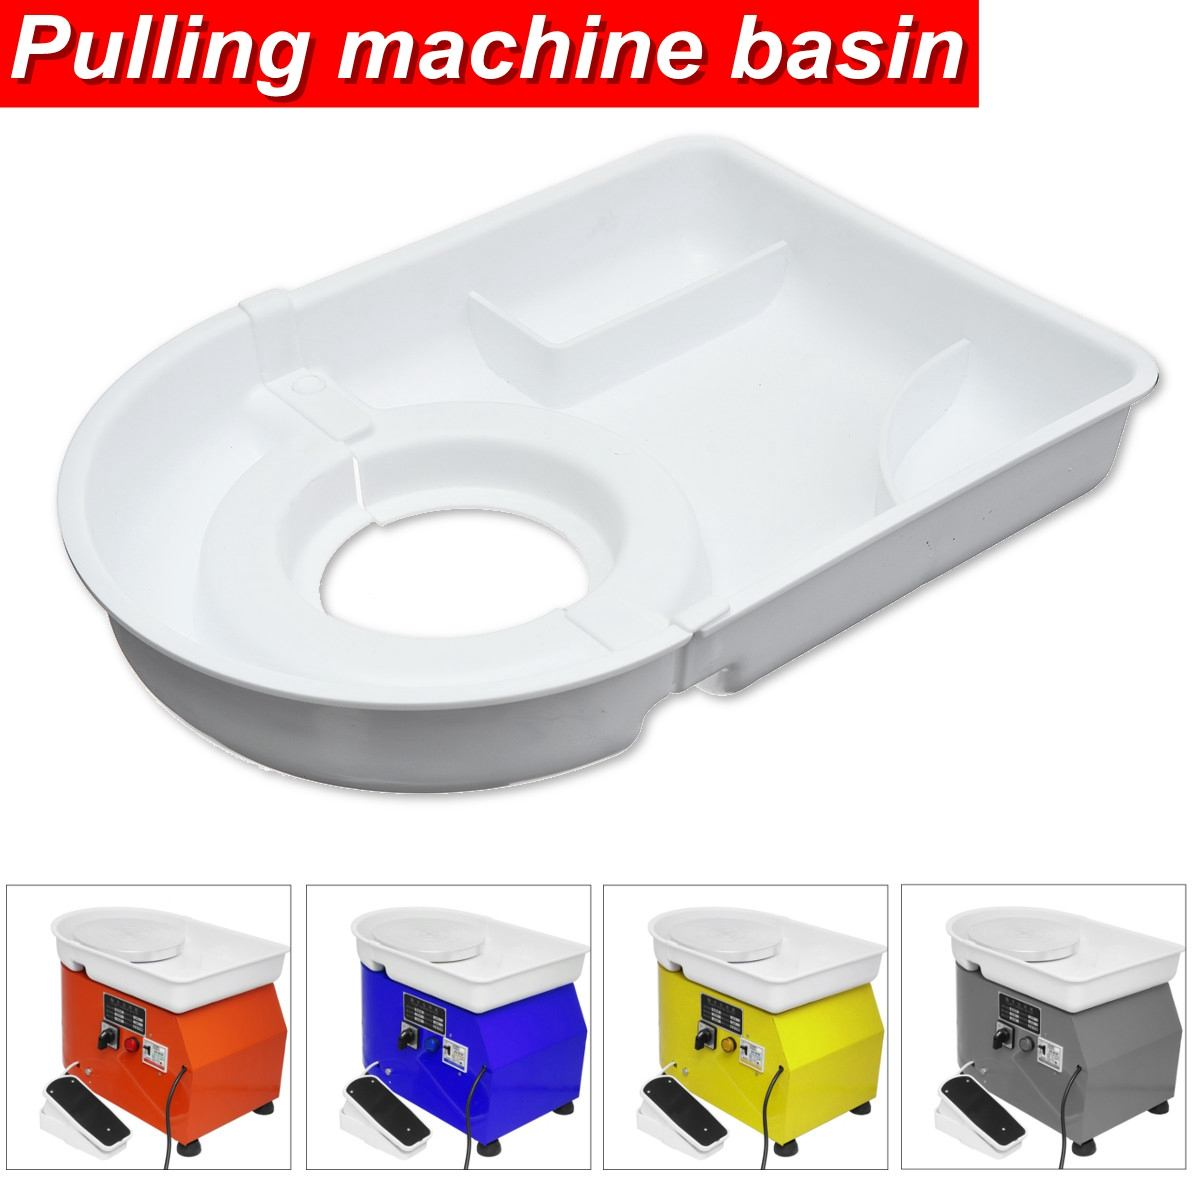 Pottery Wheel Ceramic Machine Pulling machine basin ABS Plastic Work Clay Art Craft Tool Parts Fittings|Pottery & Ceramics Tools| |  - title=